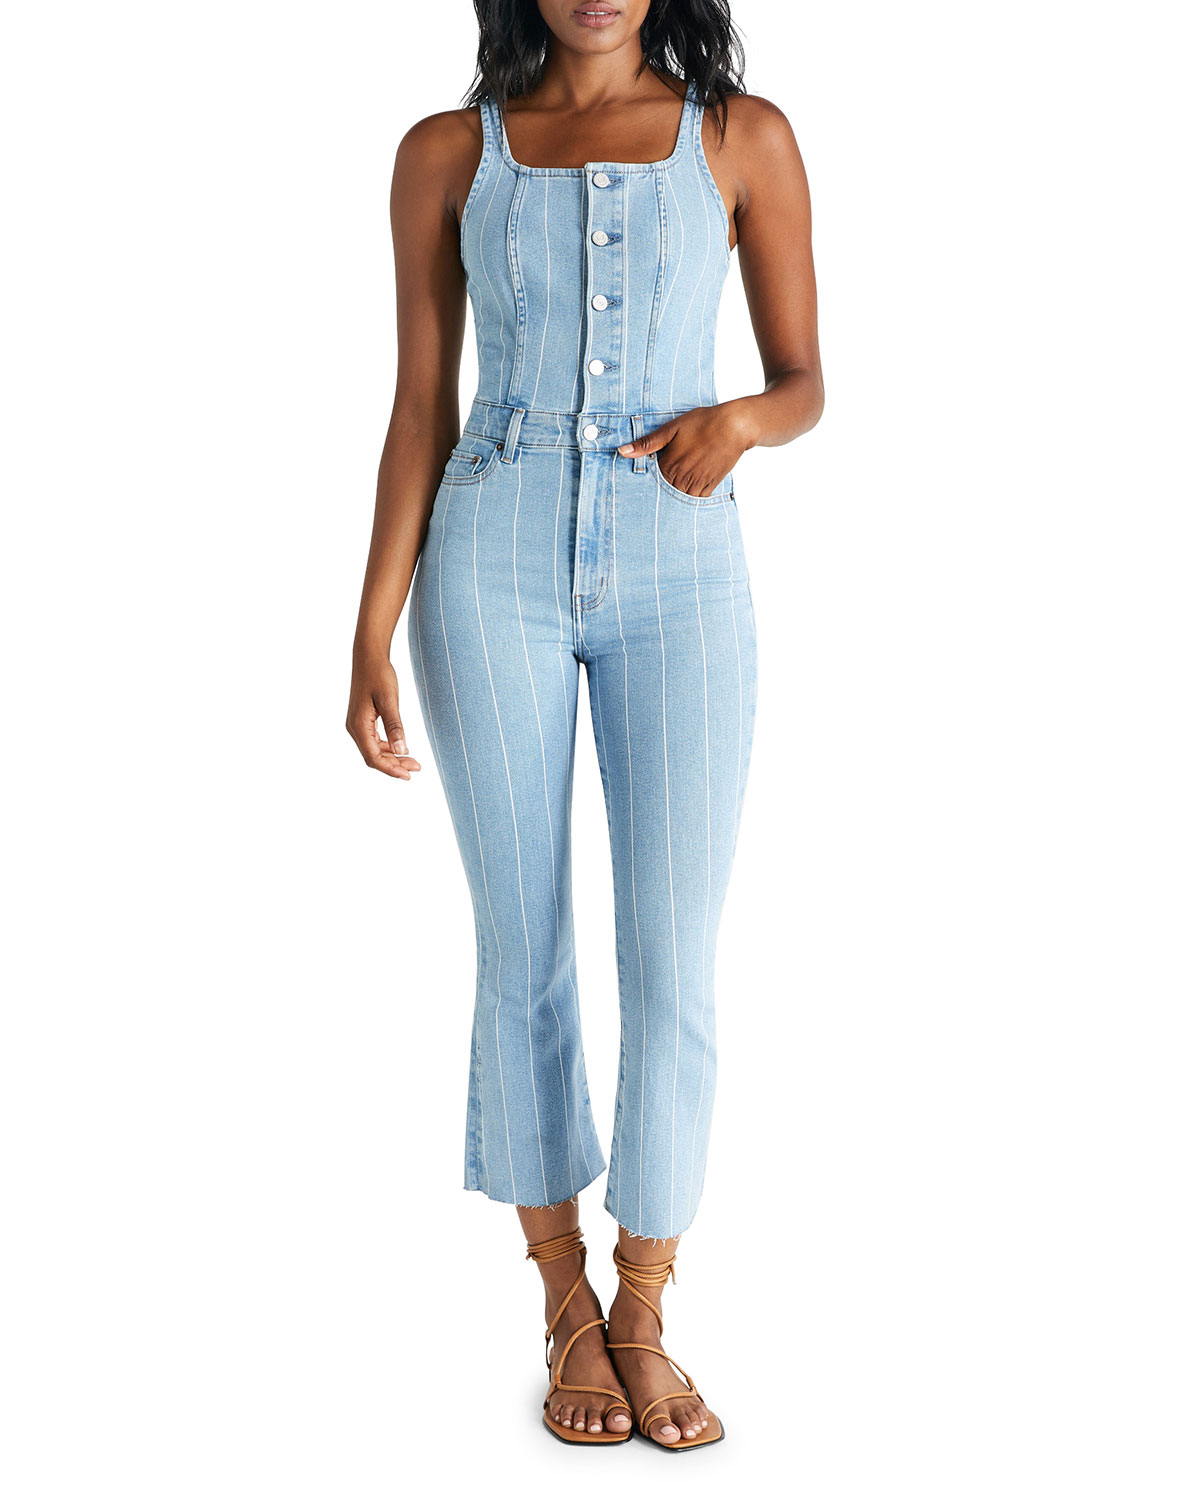 etica Ivy Striped Denim Overalls